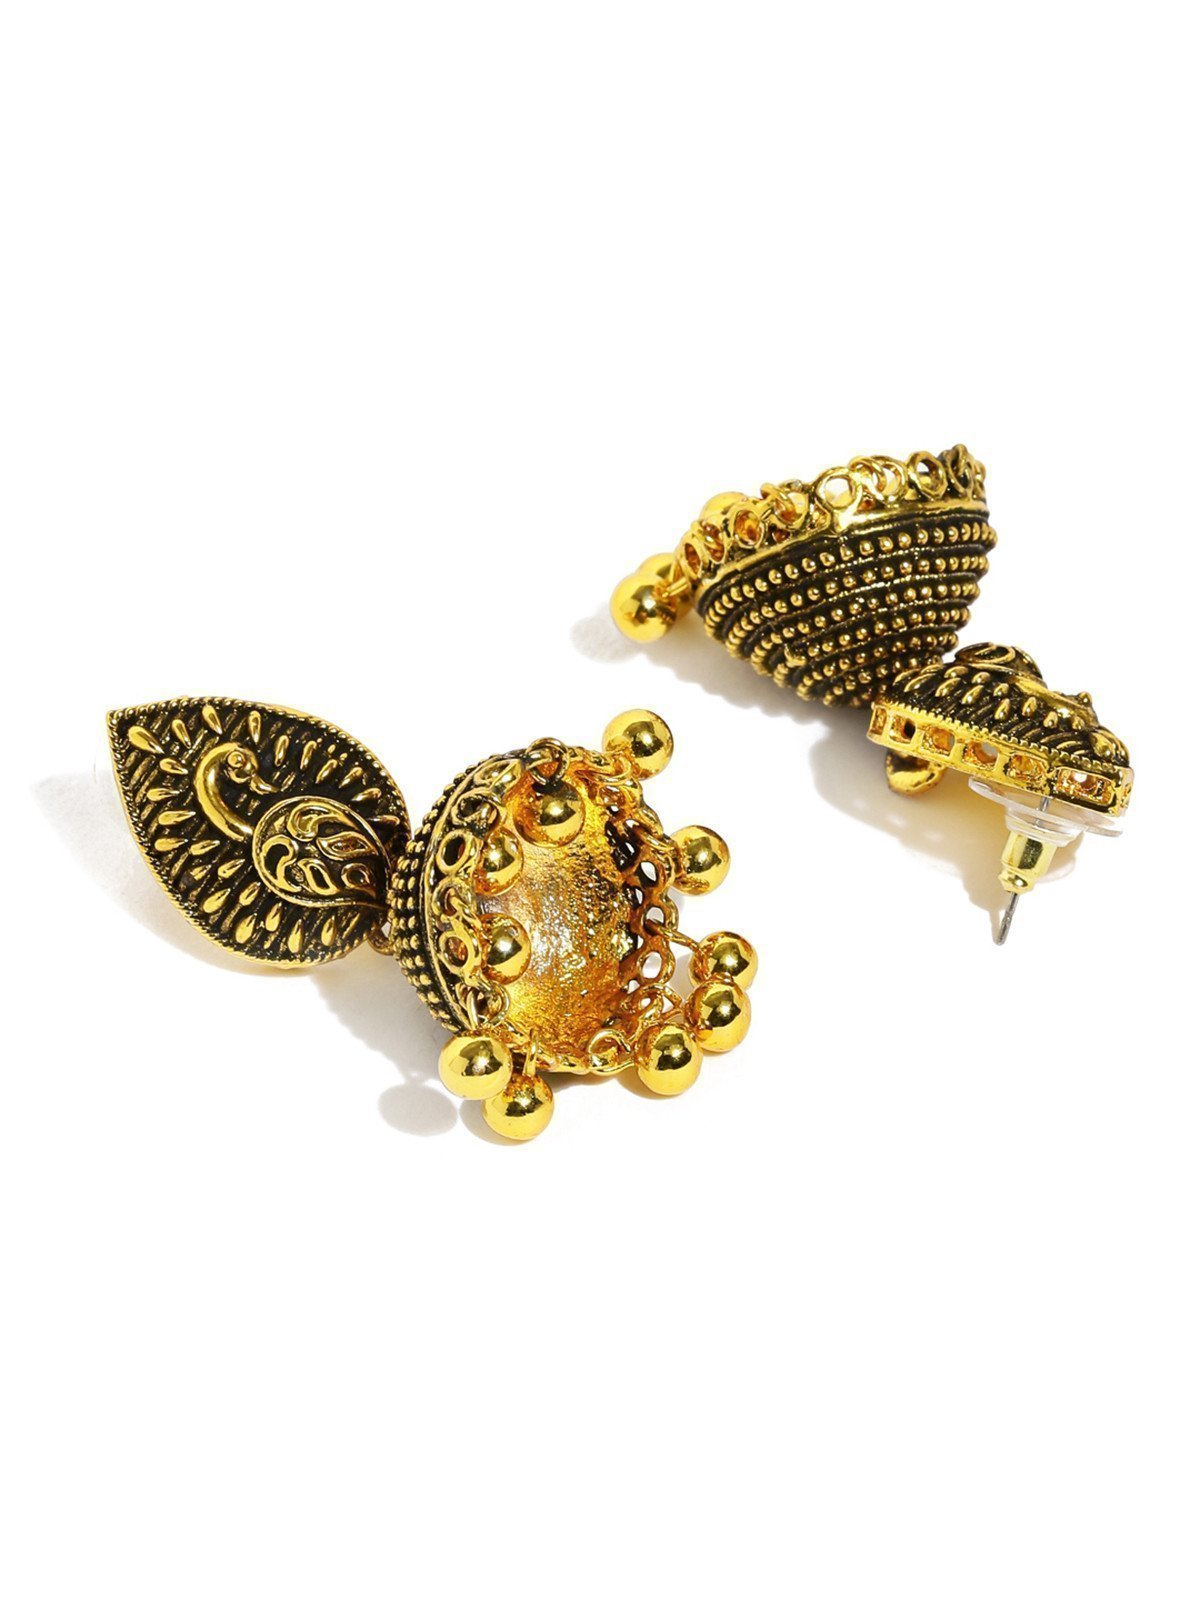 Dark Antique Graceful Peacock Jhumki Earring - Zpfk5938